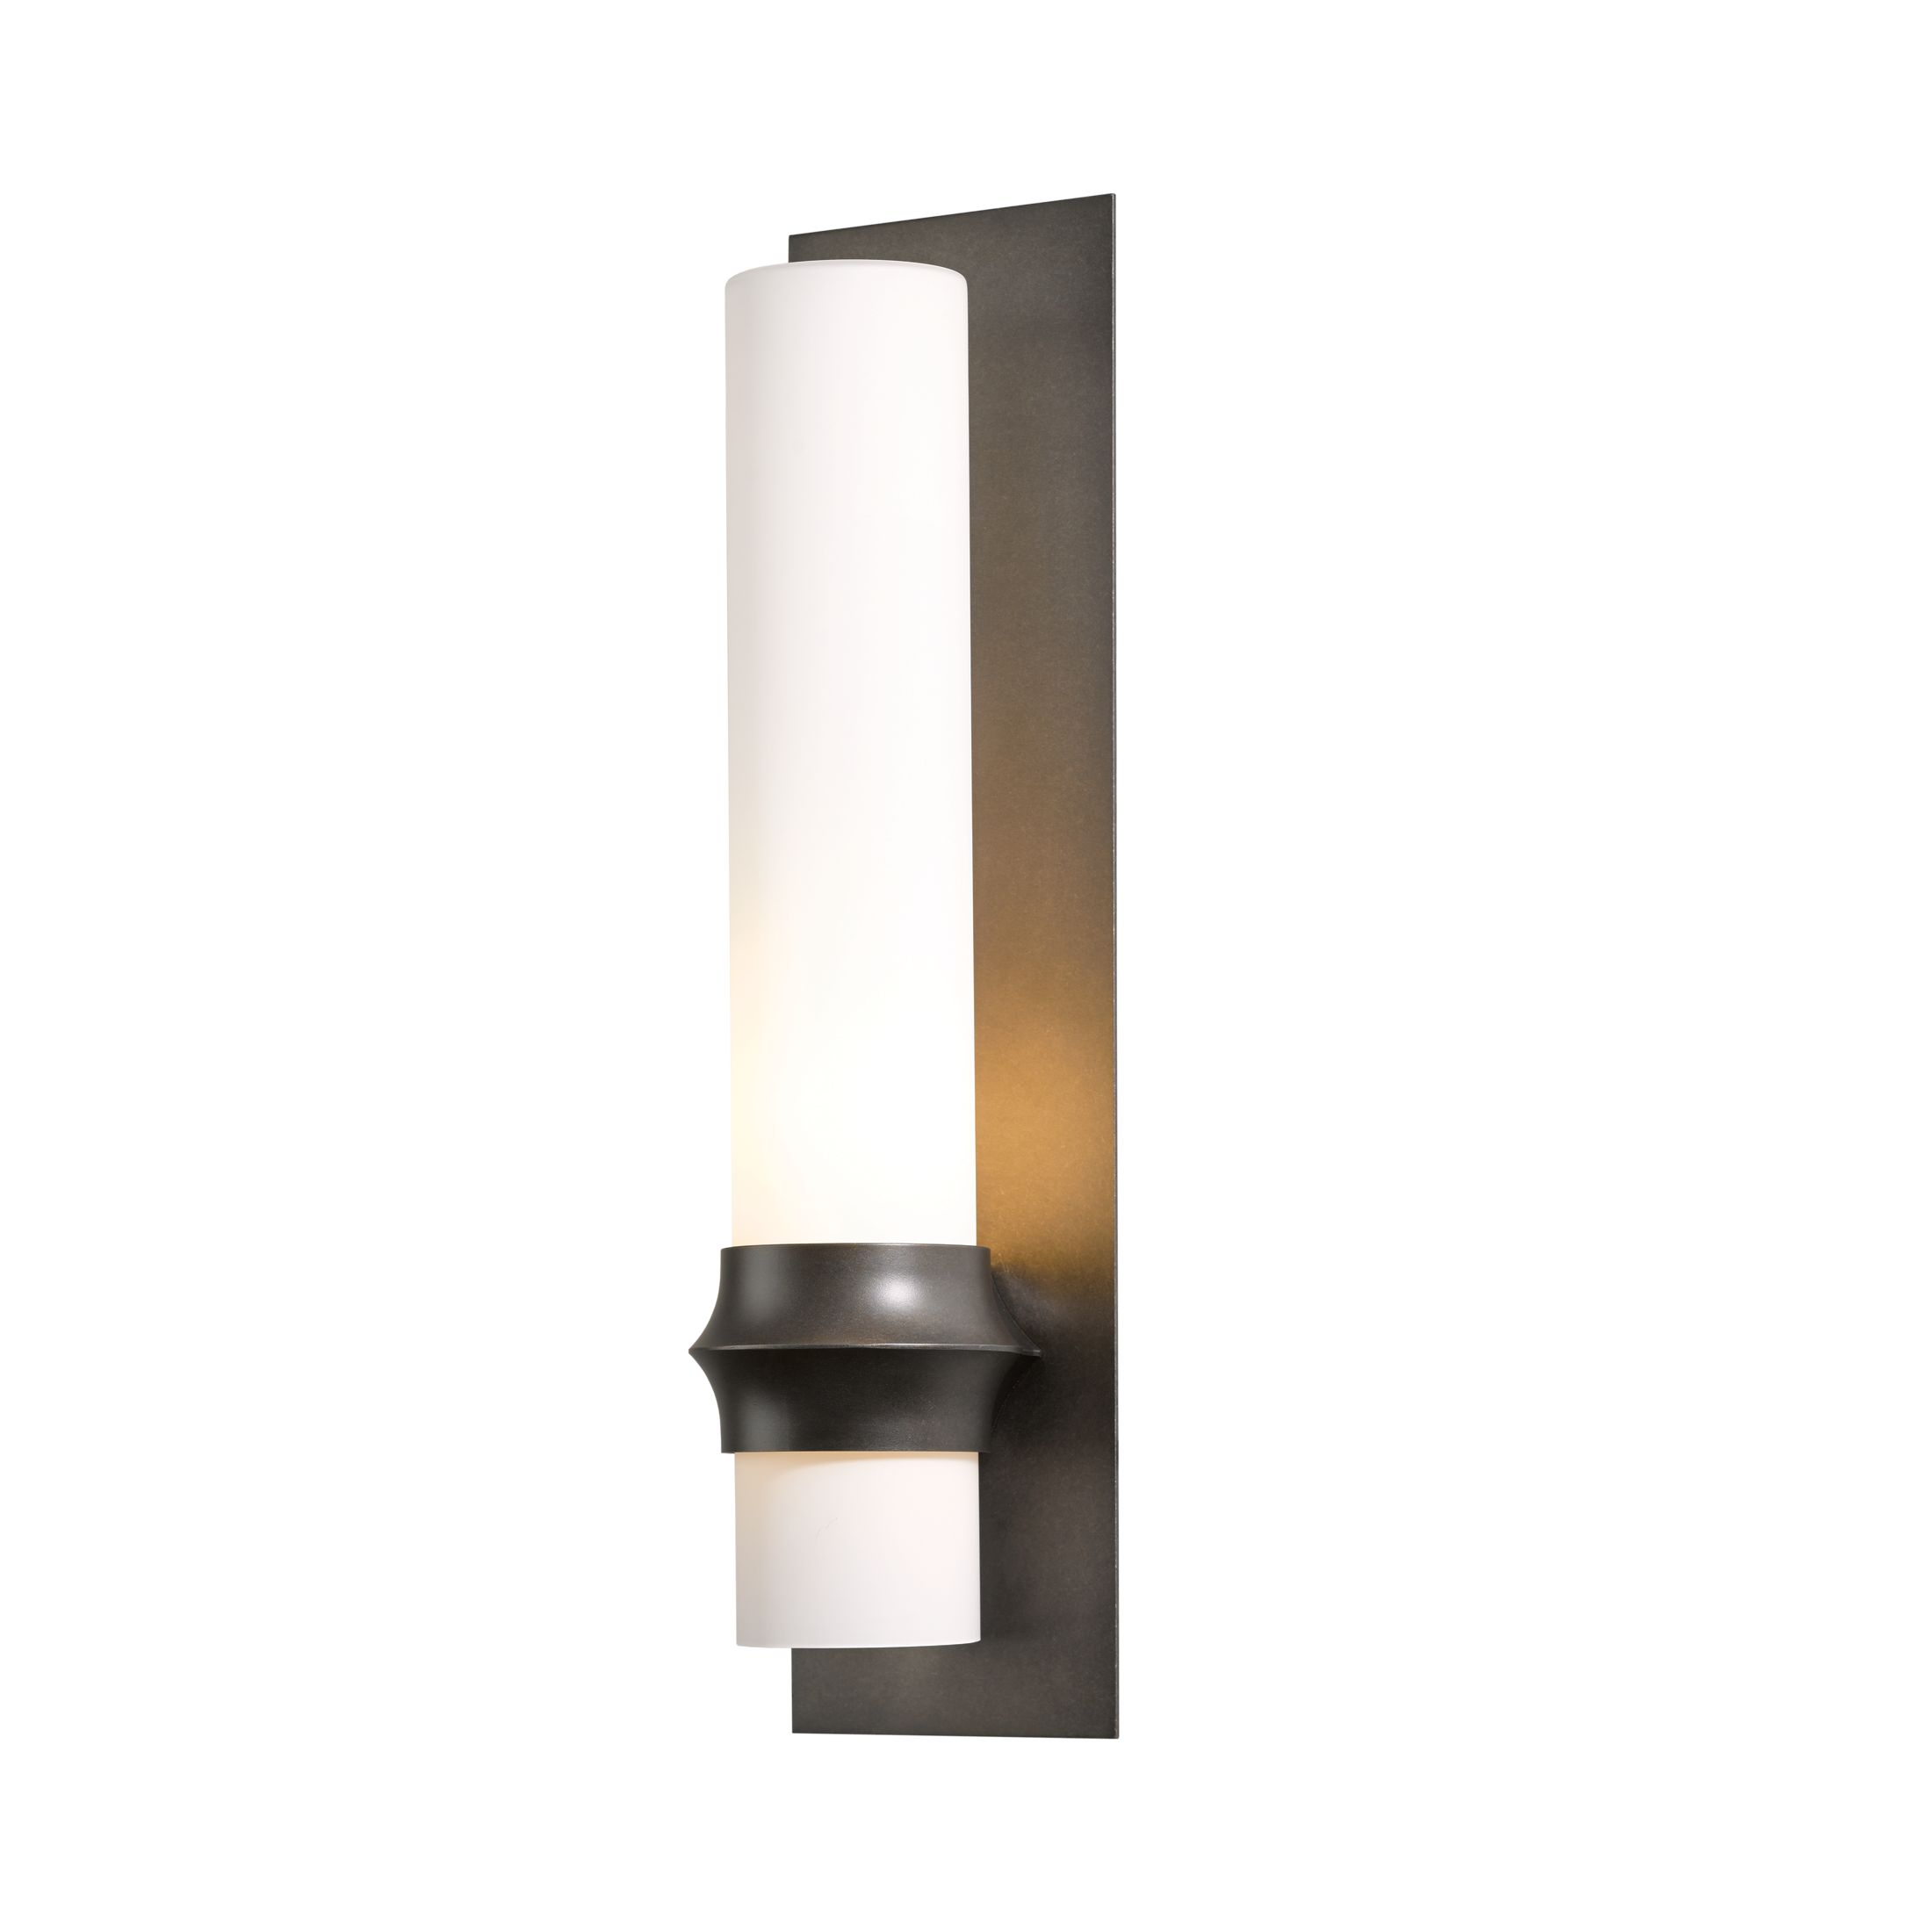 Thumbnail for Rook Large Outdoor Sconce